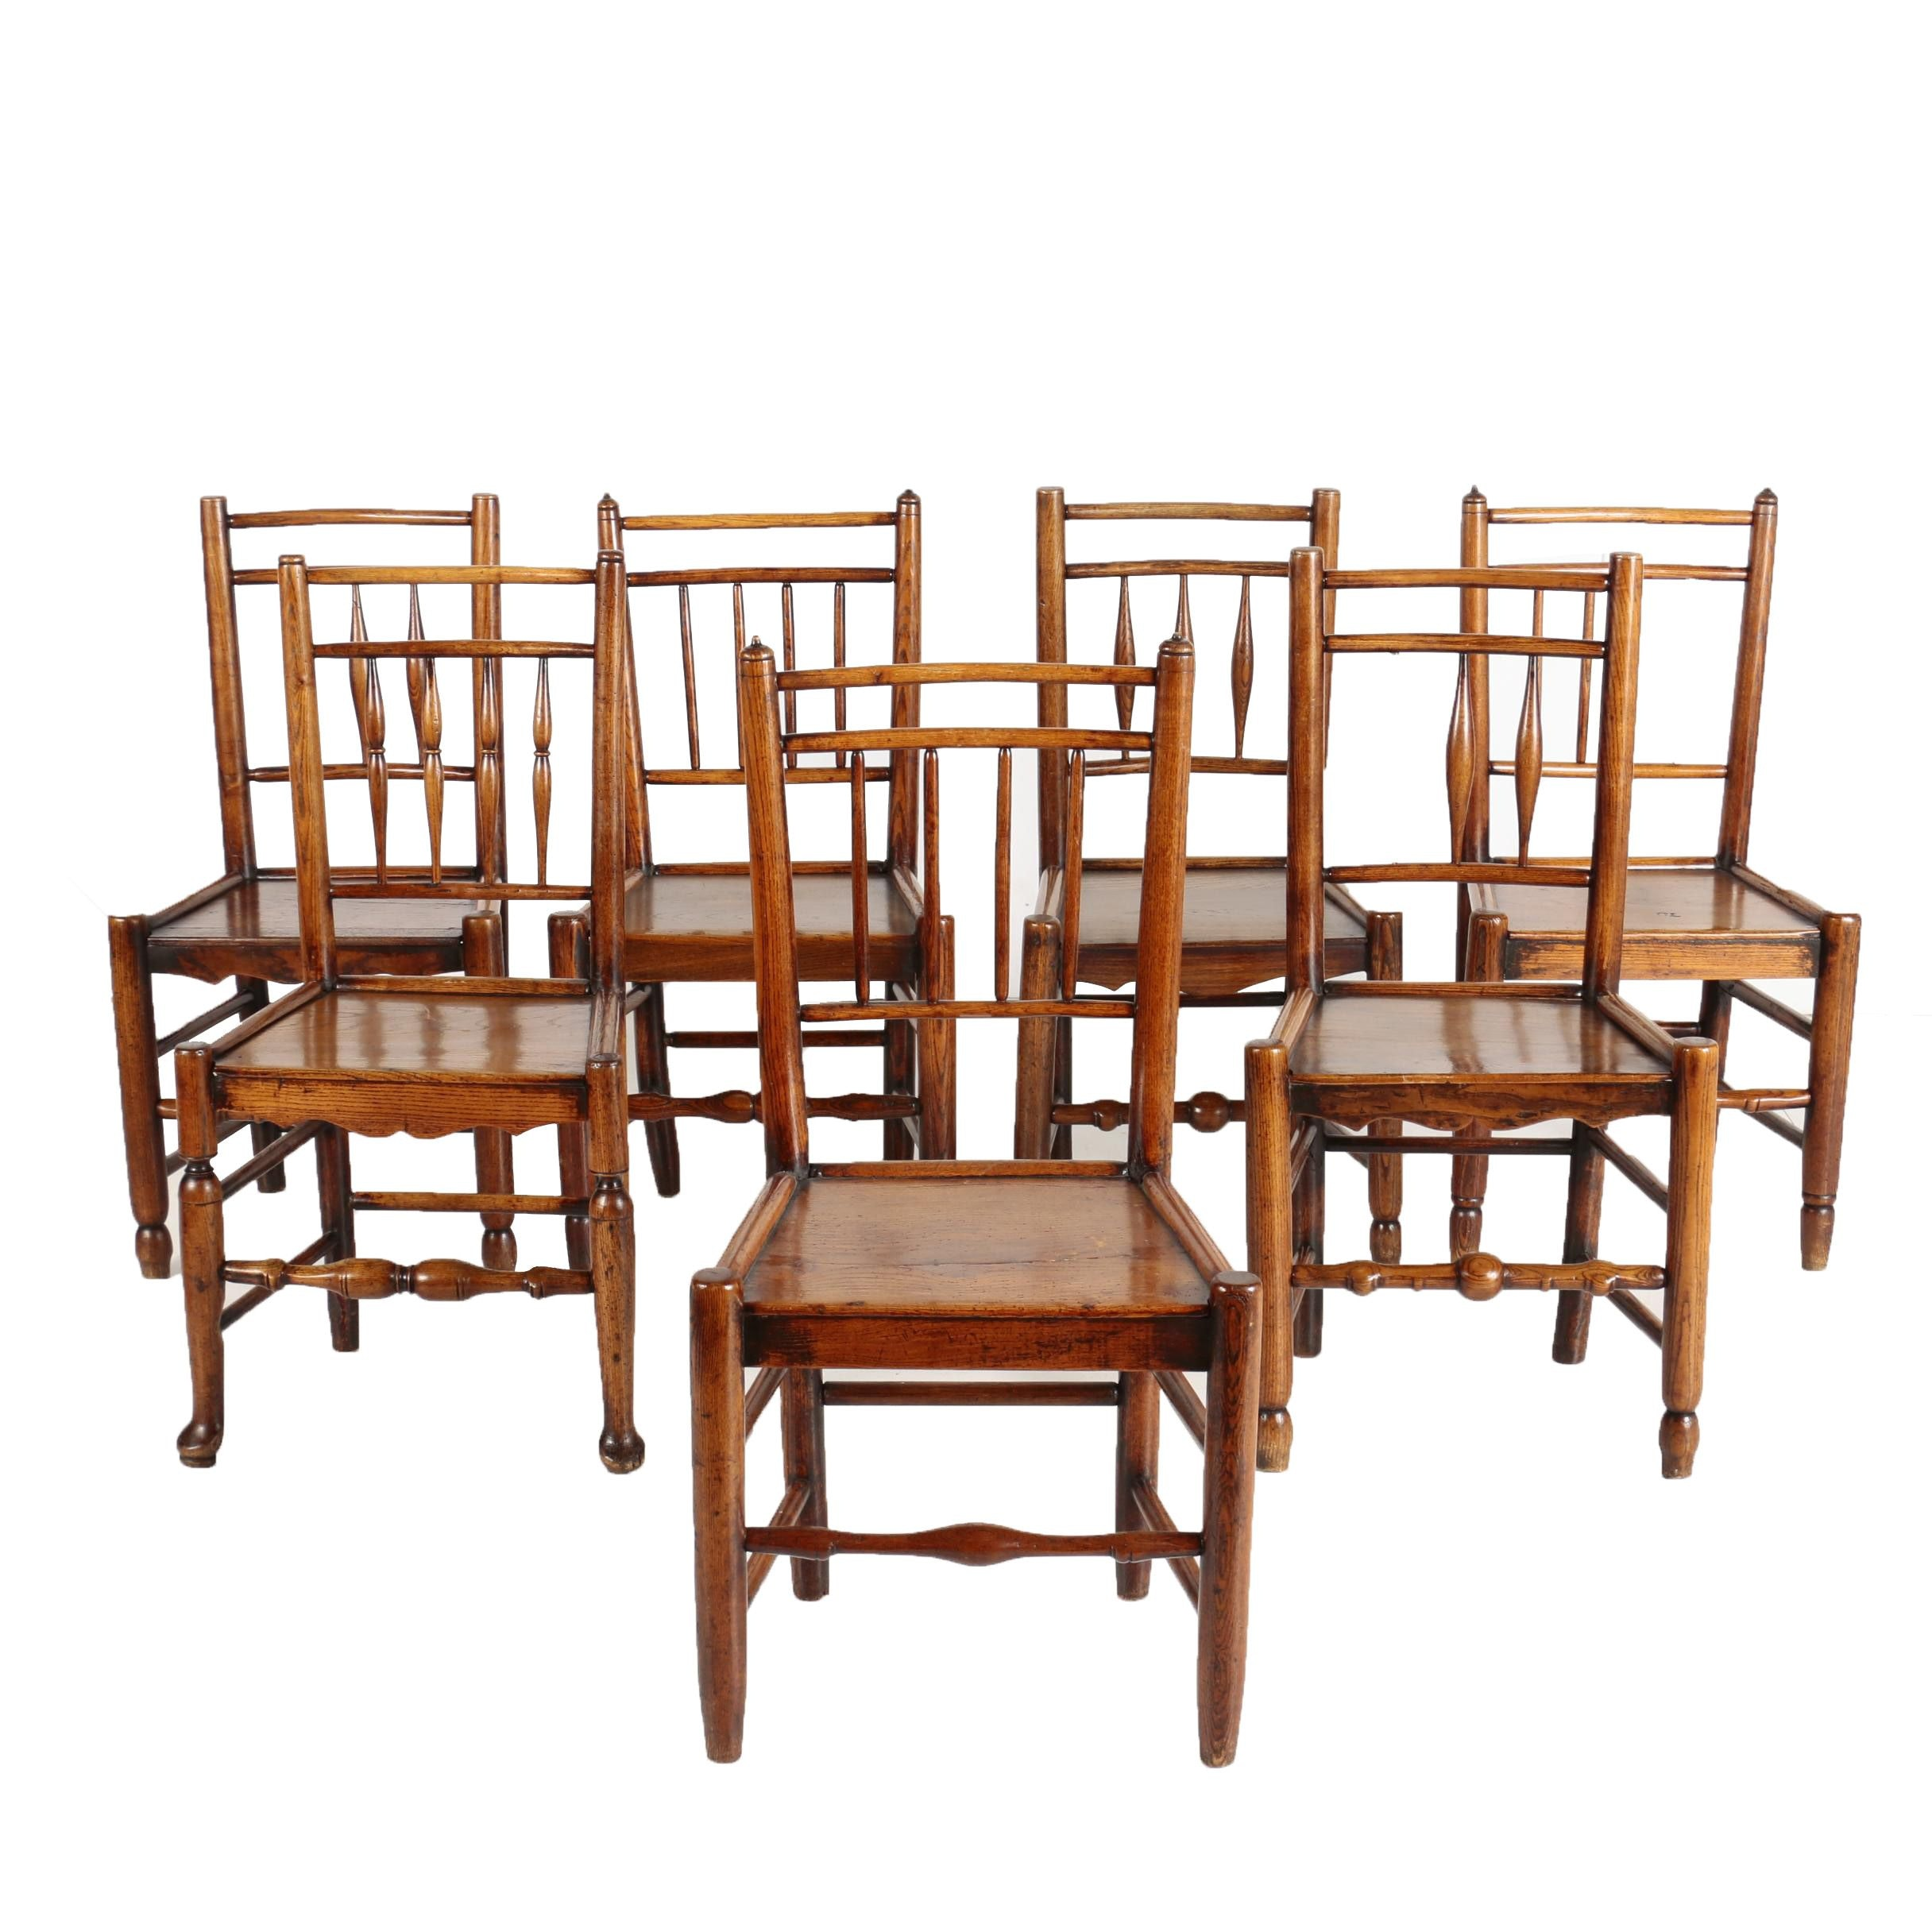 Matched Set of Seven French Provincial Ash Dining Chairs, Late 19th Century